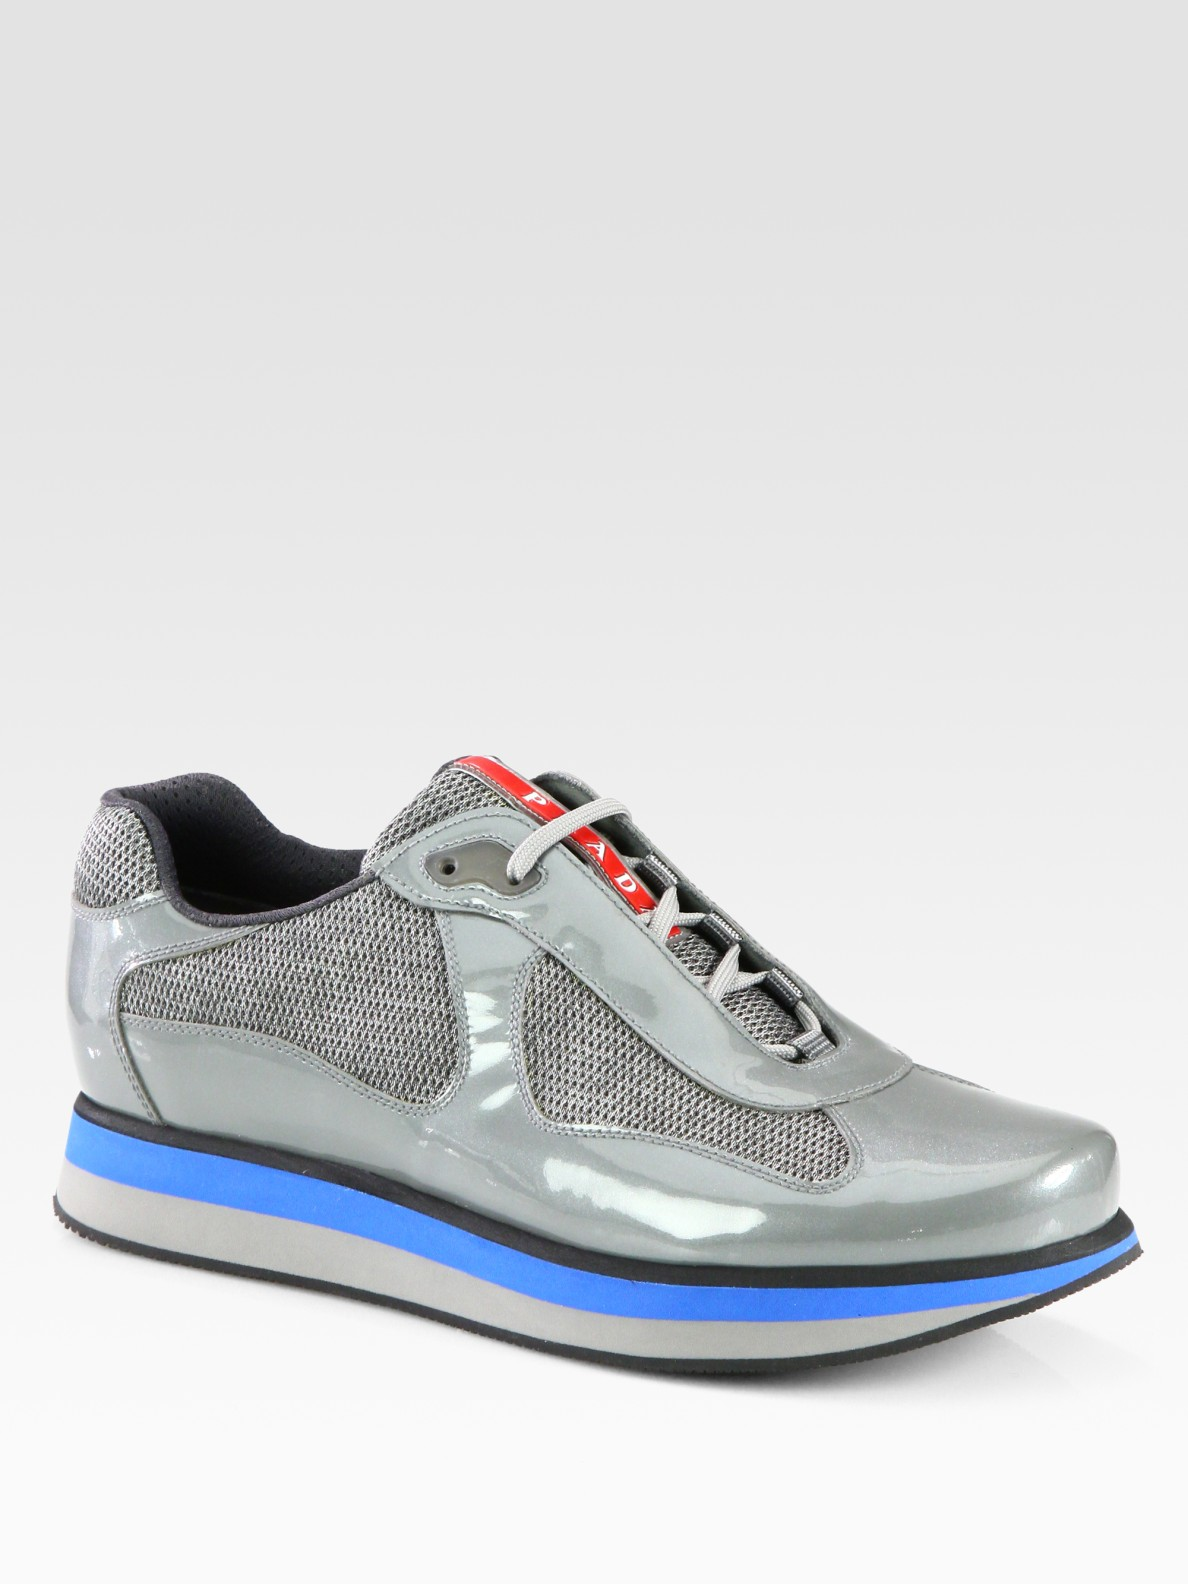 PradaAmerica's Cup Patent Leather Patchwork Sneakers xn43sv